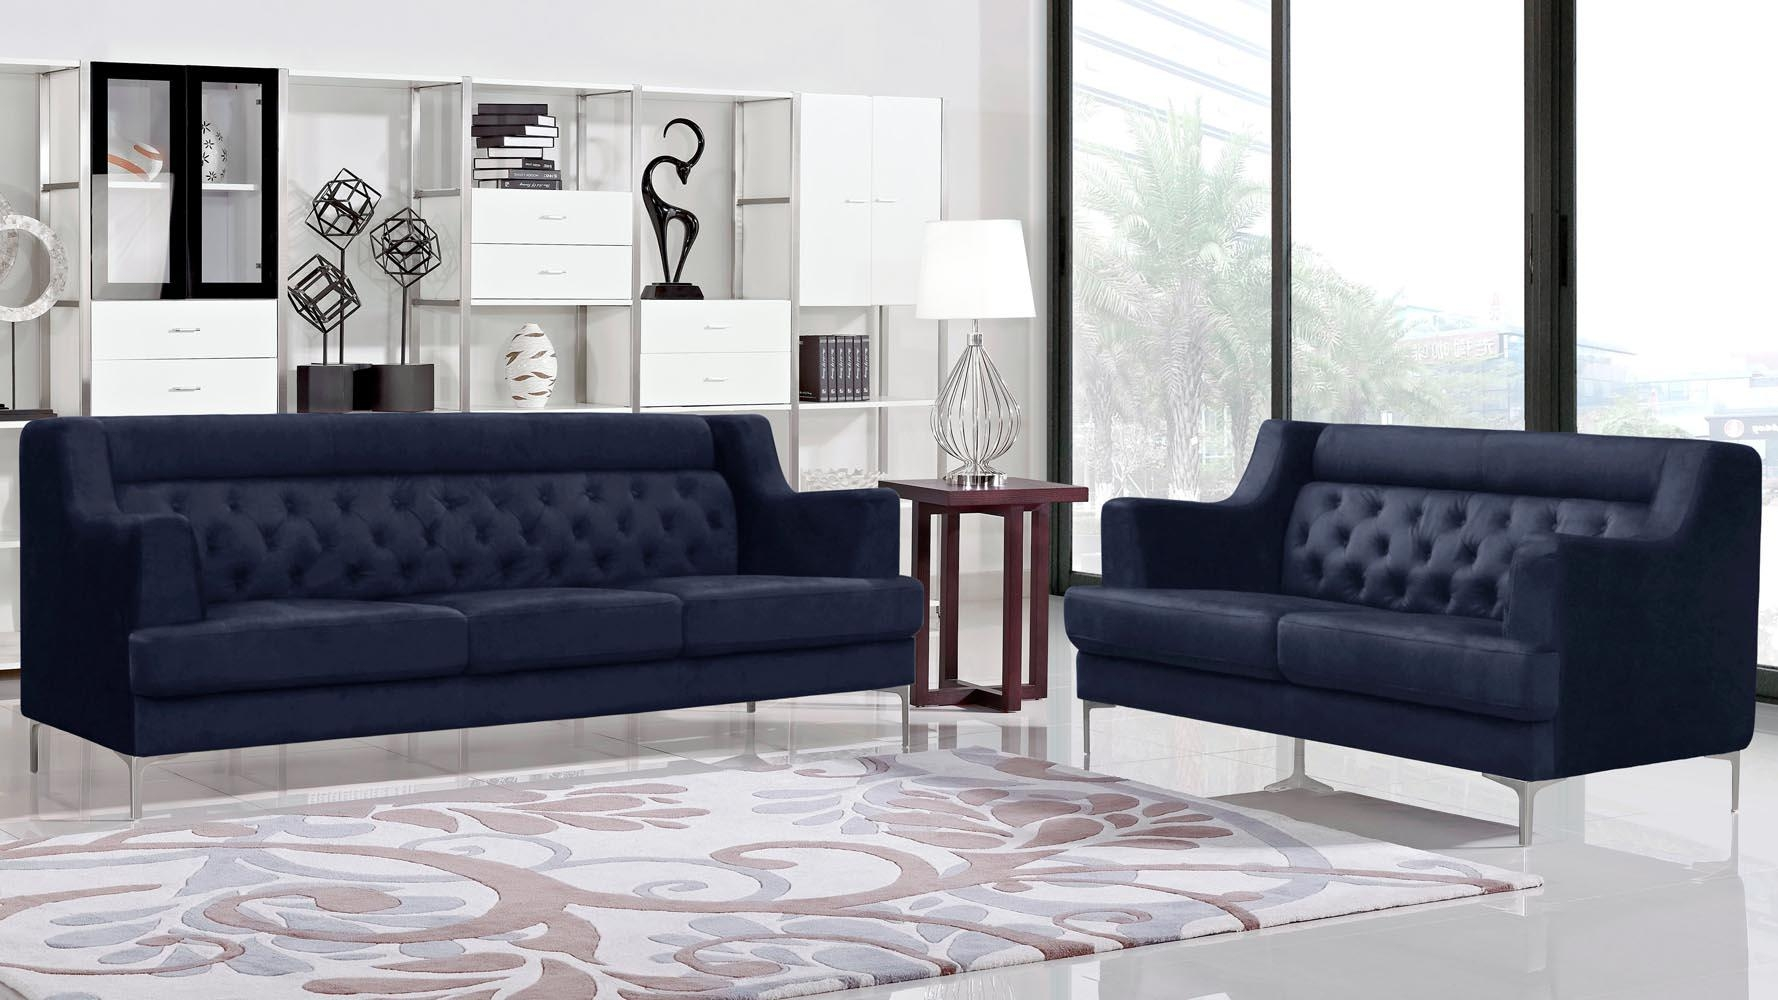 Zara Fabric Tufted Sofa With Chrome Legs – Navy Blue | Zuri Furniture In Sofas With Chrome Legs (Image 20 of 20)